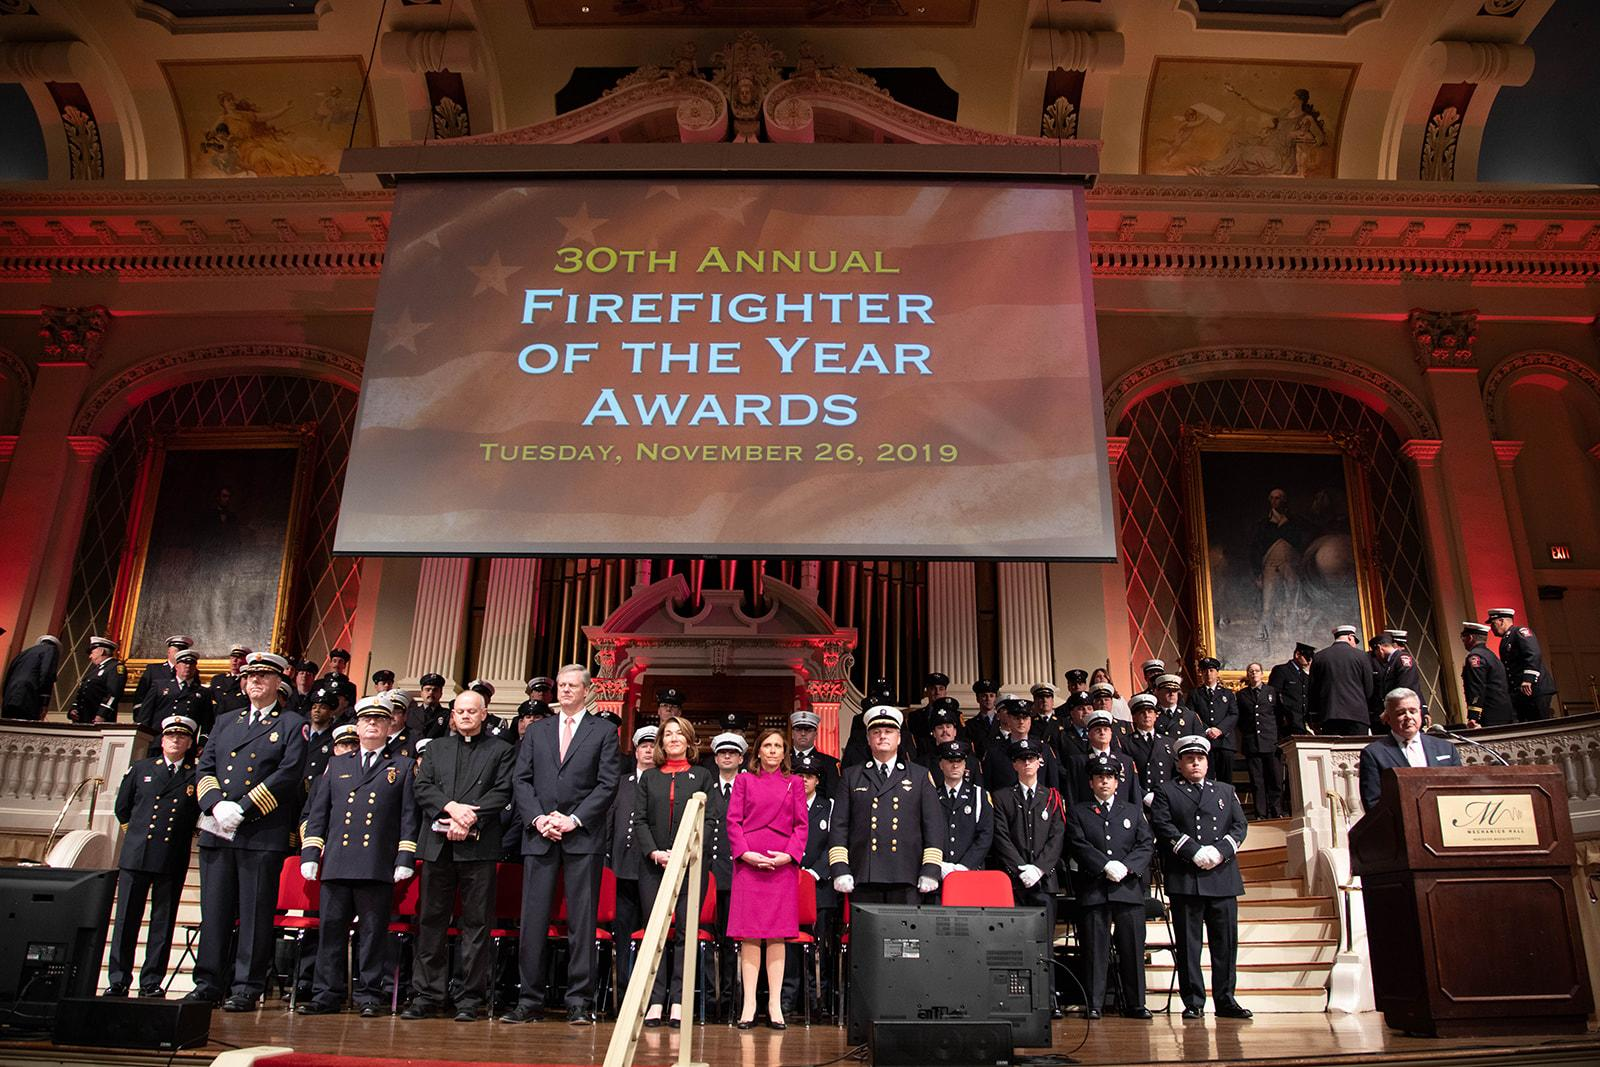 Stage at the 30th annual Firefighter of the Year Awards